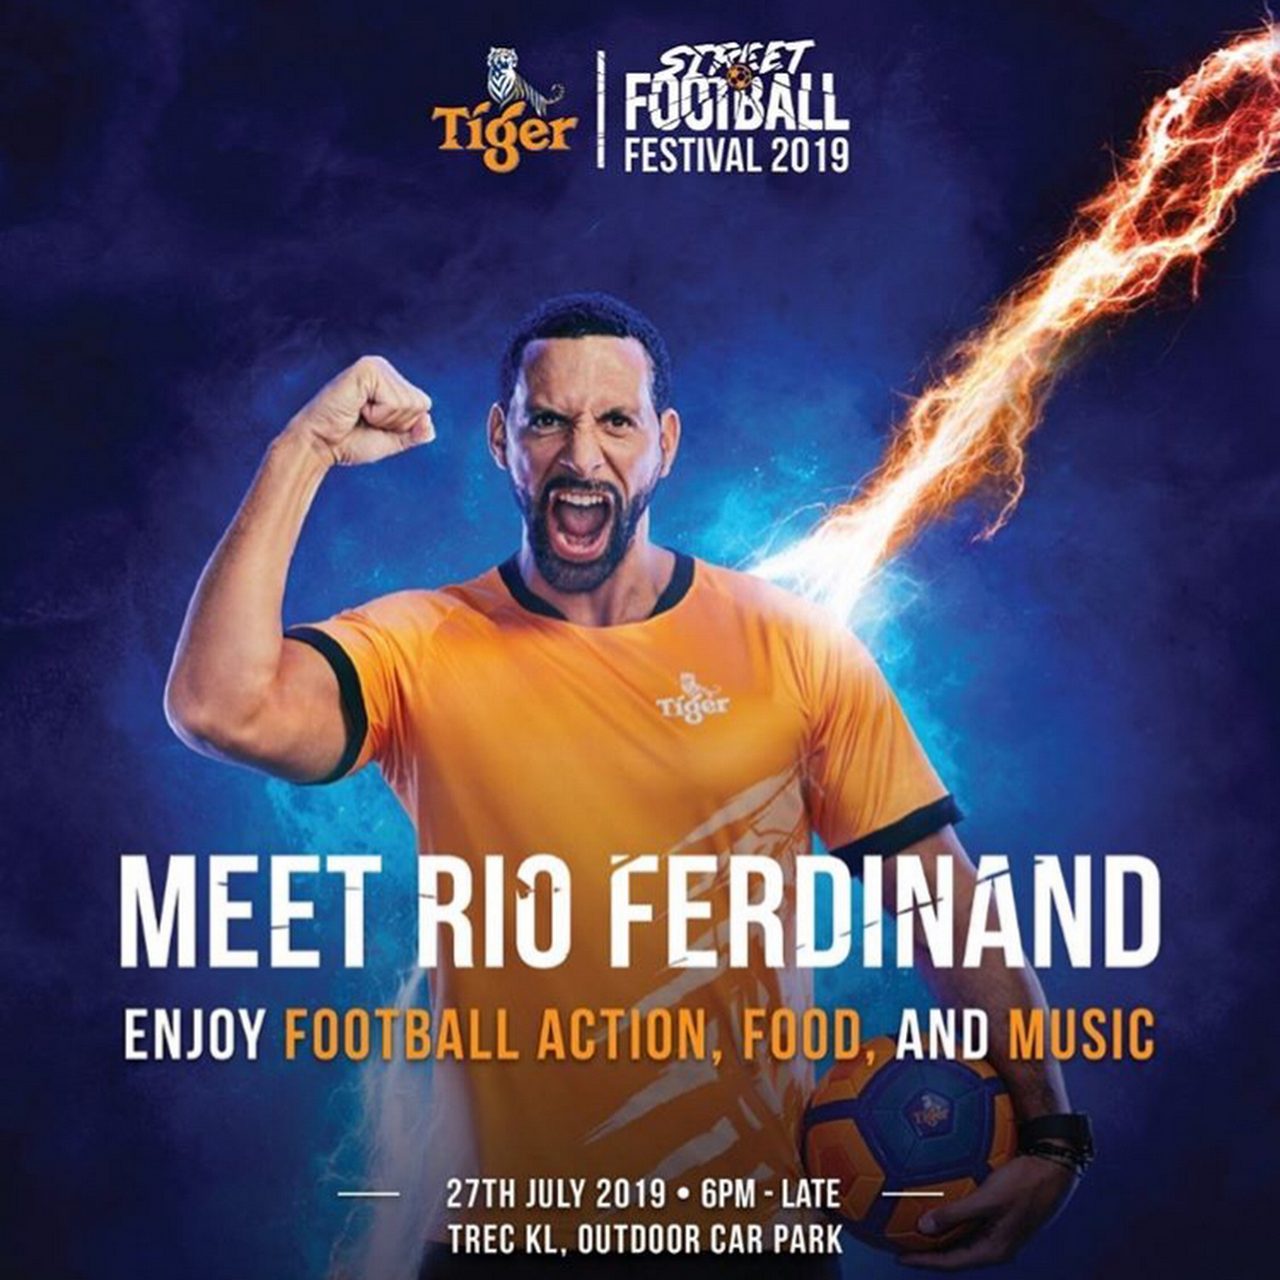 TREC KL - Largest Entertainment and F&B Hangout in Kuala